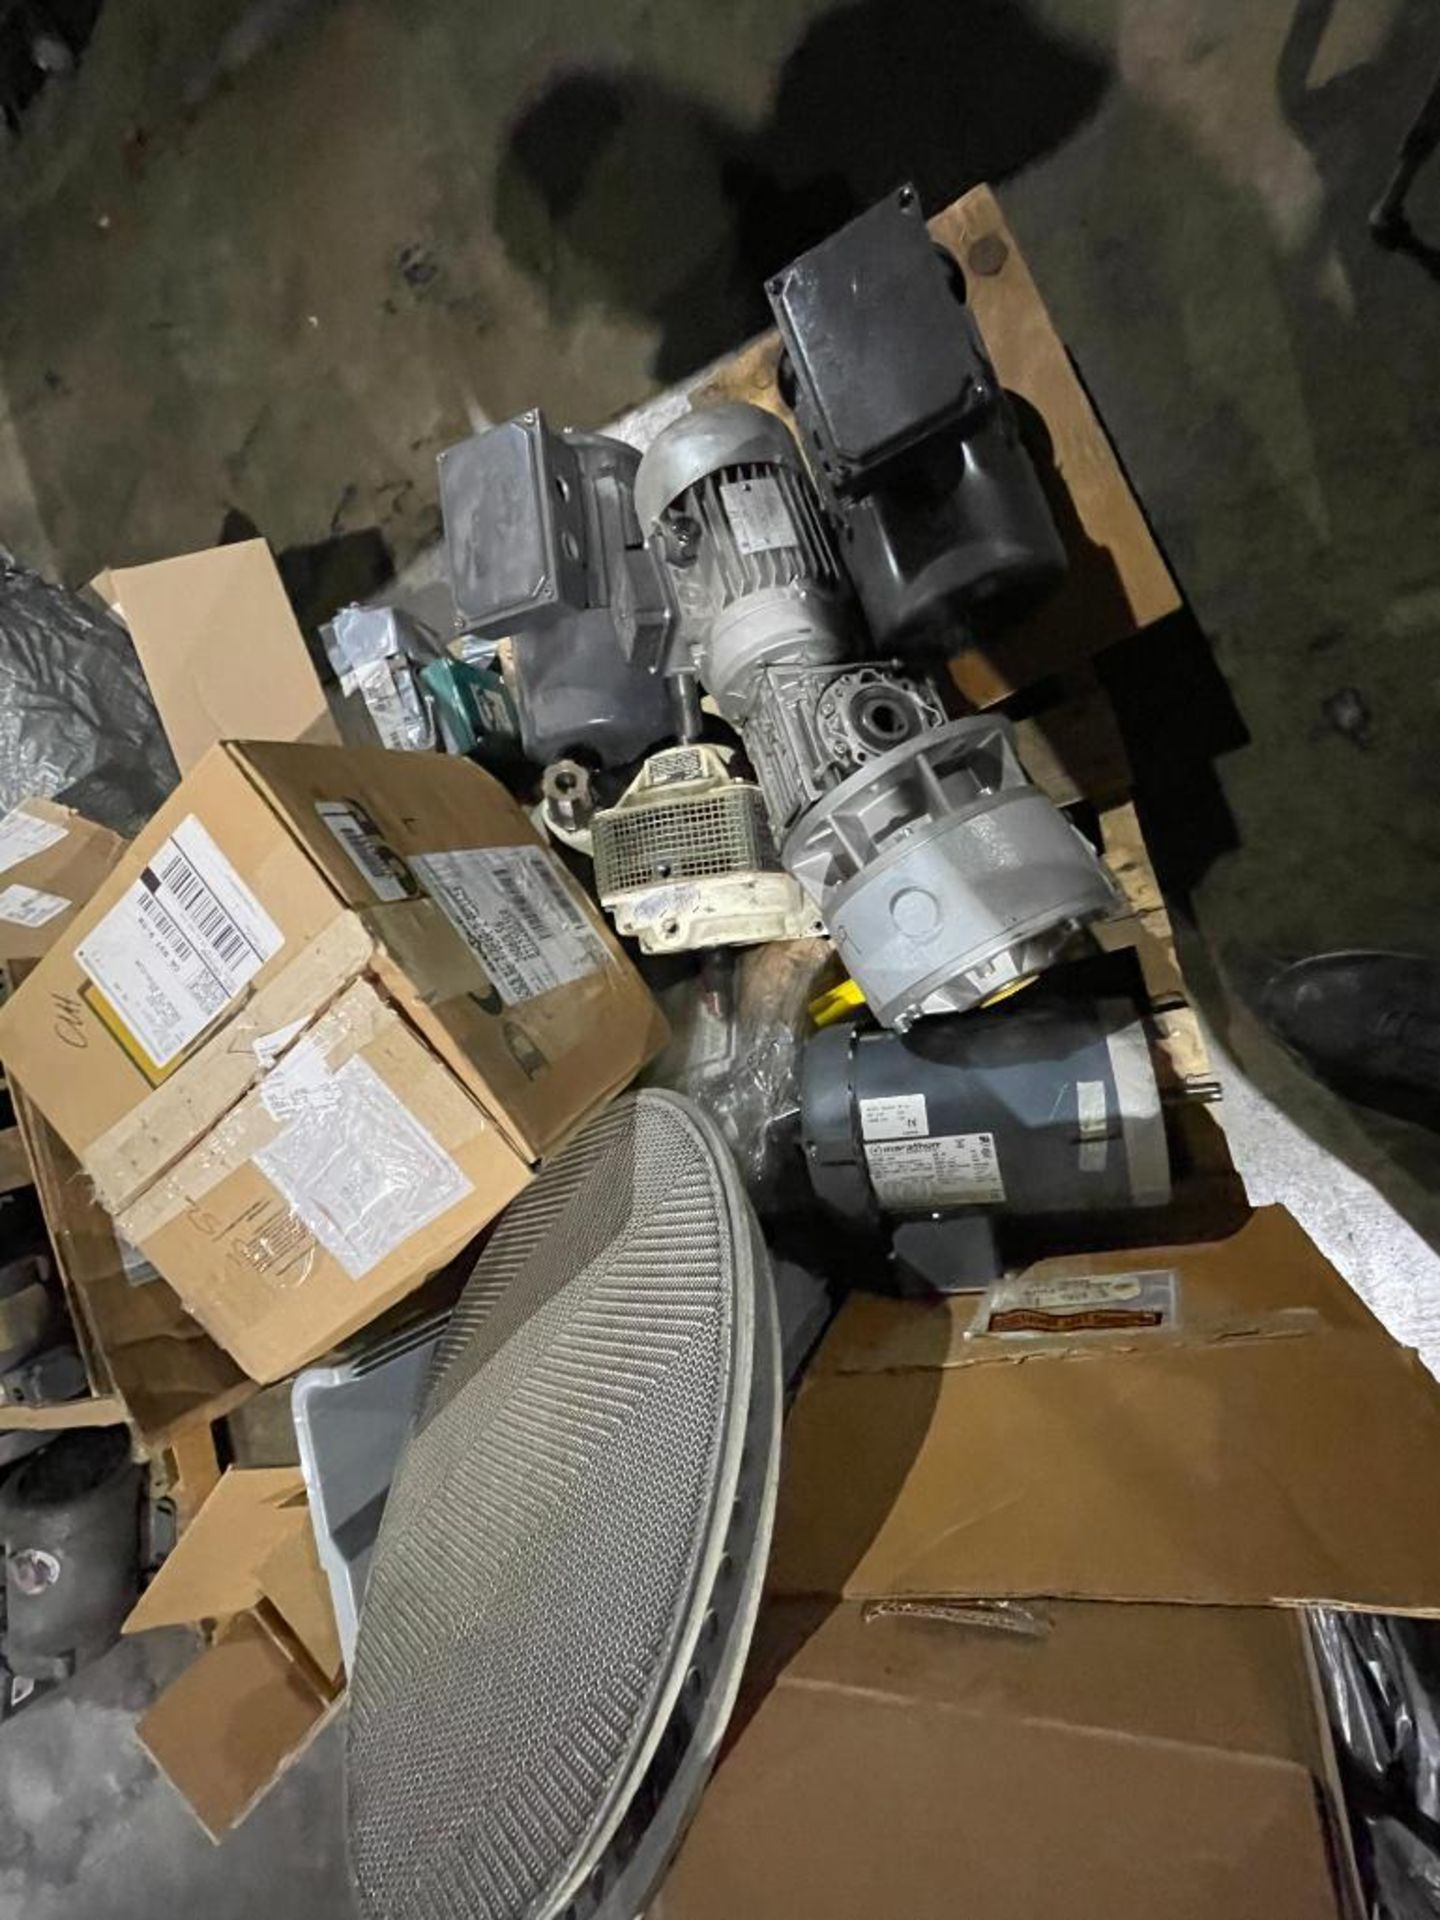 pallet of new and used motors and drives - Image 6 of 11